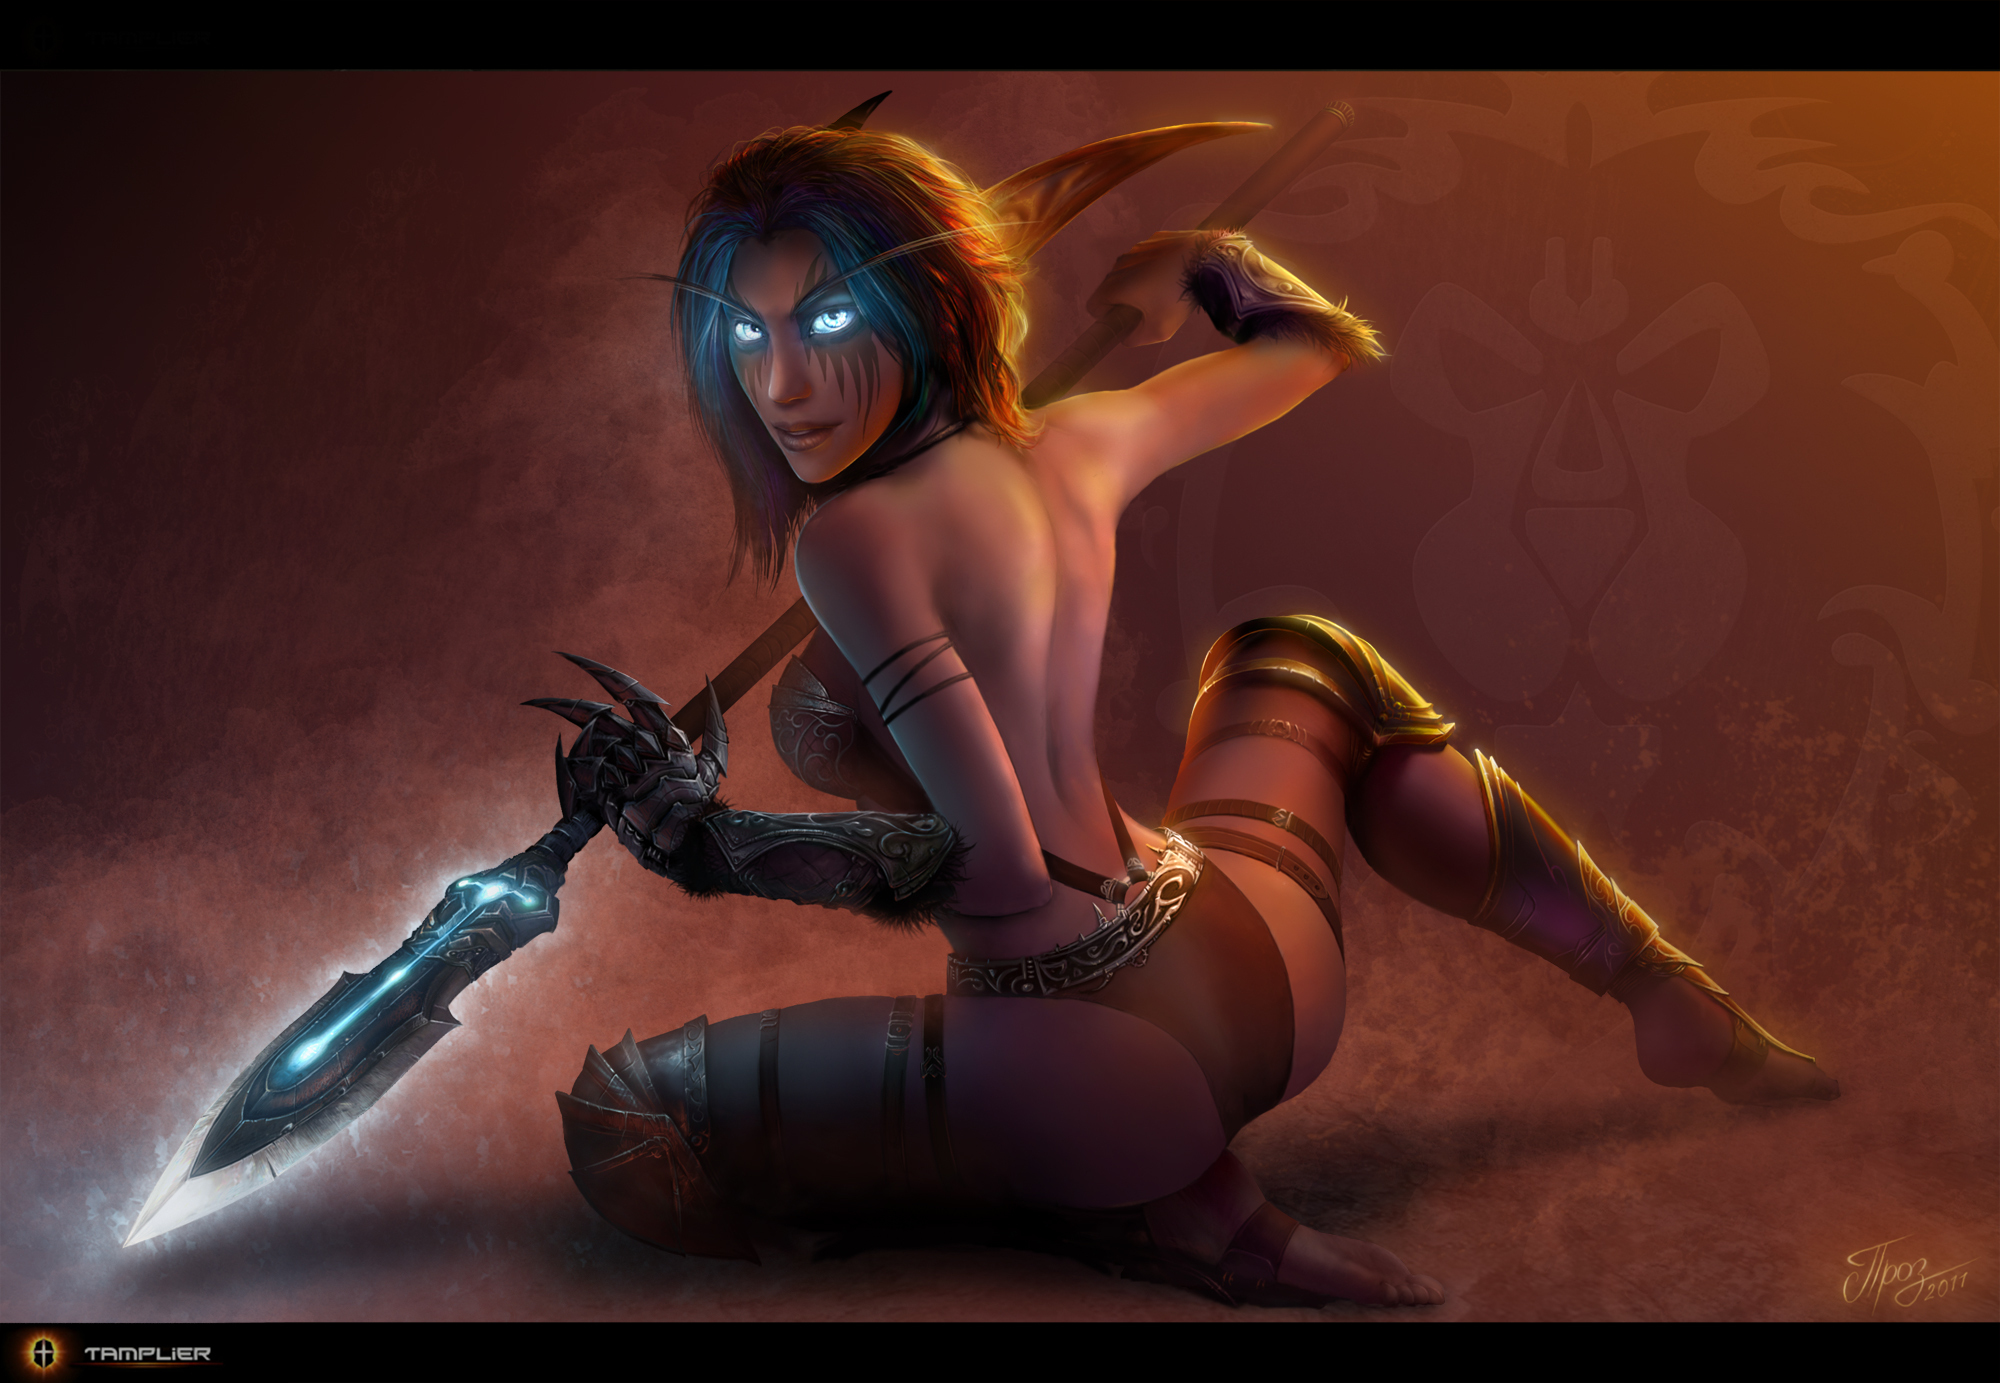 World of warcraft futanari mod nsfw image